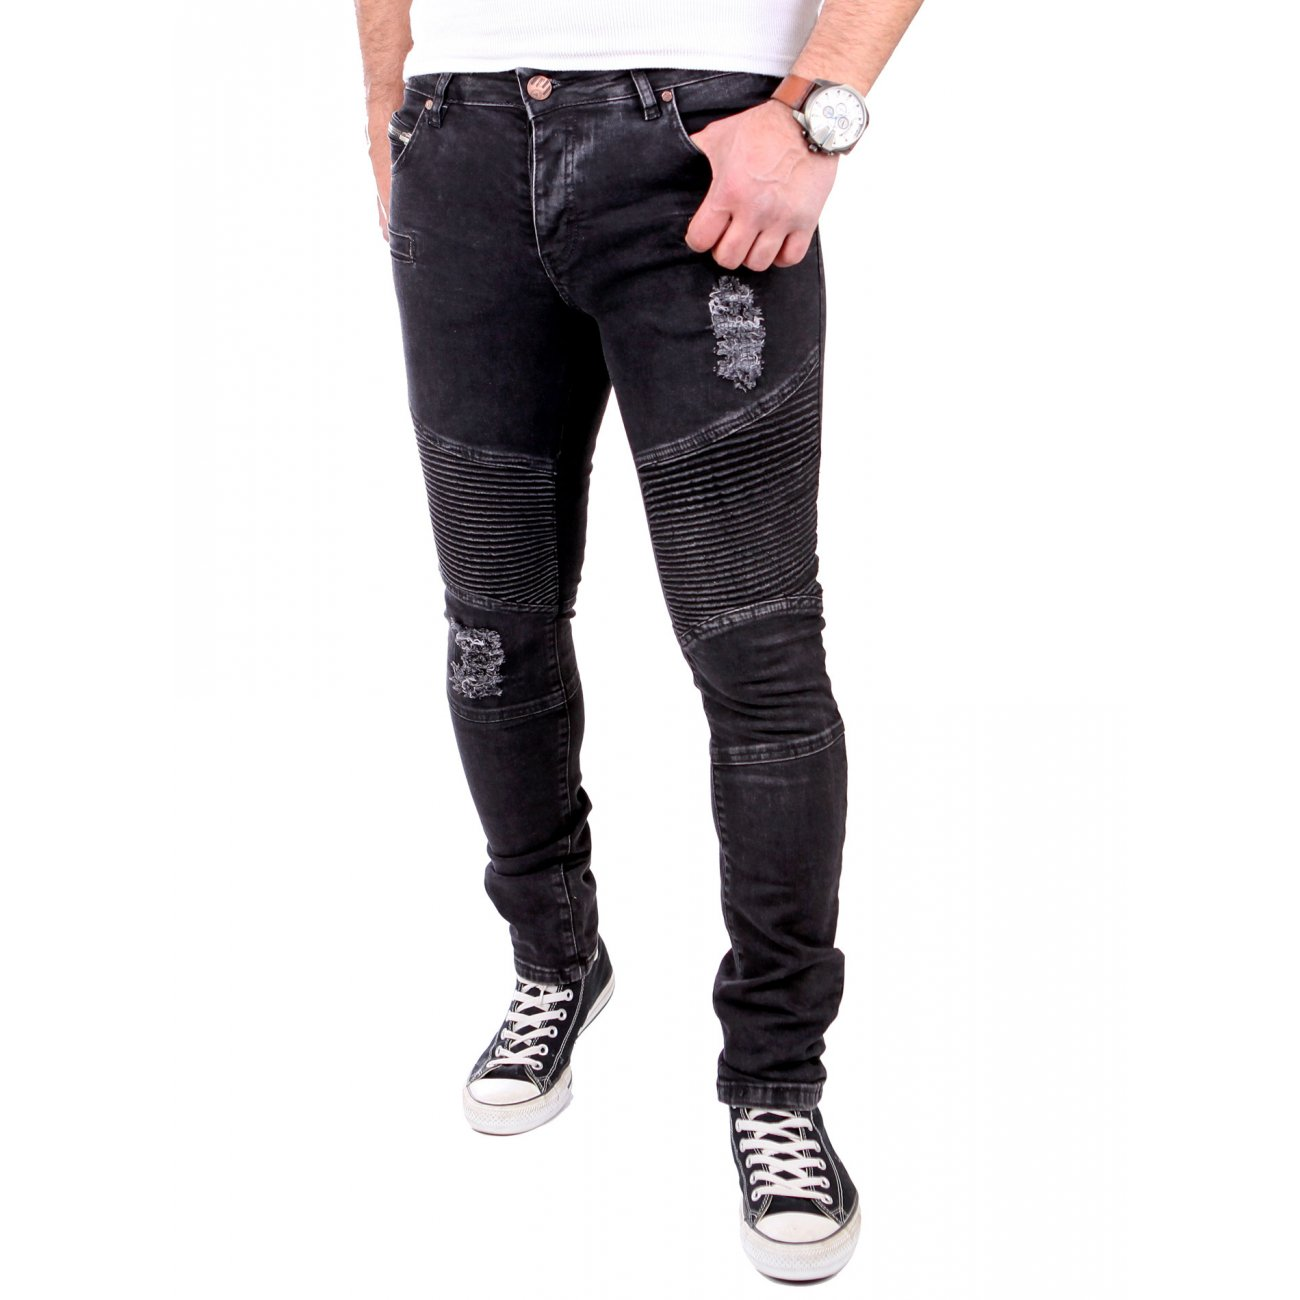 tazzio jogg jeans herren slim fit jogging jeans schwarz. Black Bedroom Furniture Sets. Home Design Ideas